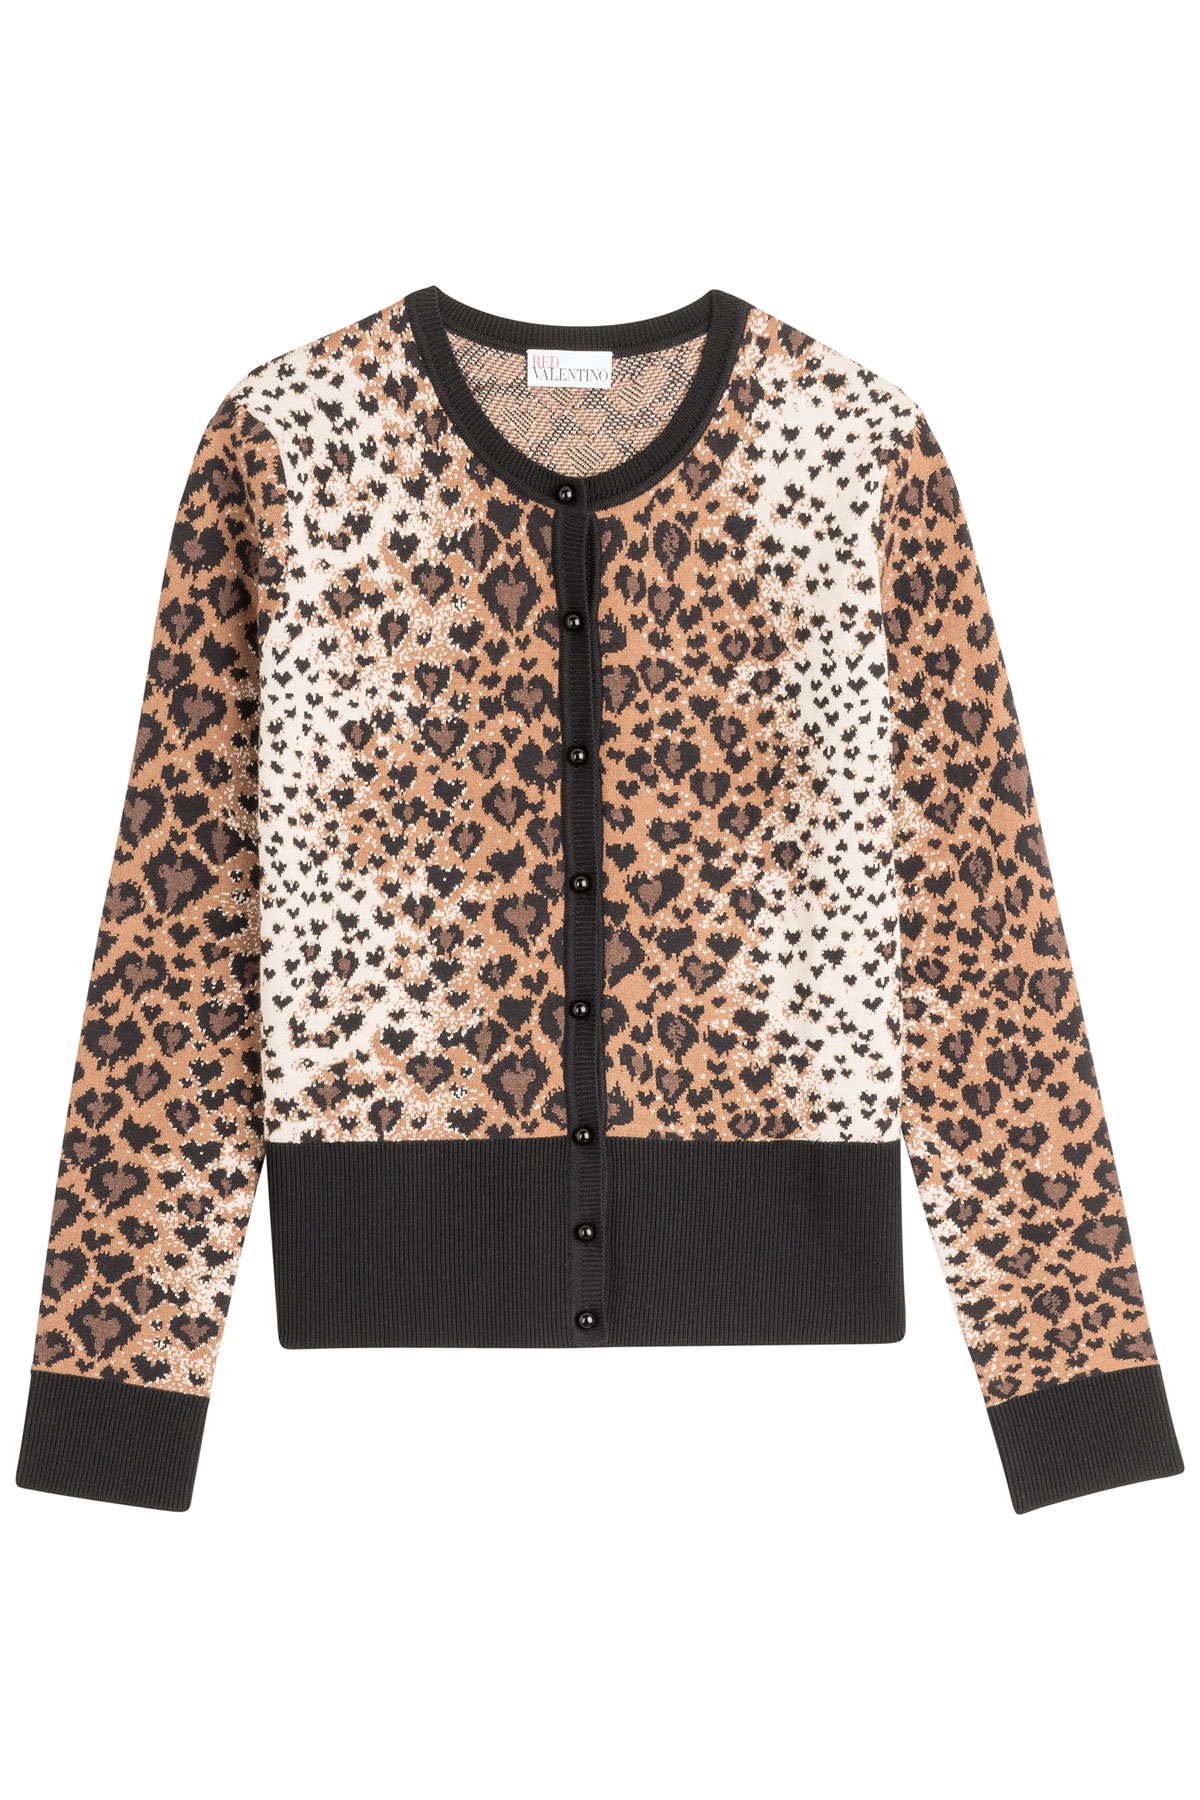 Find animal print cardigan at ShopStyle. Shop the latest collection of animal print cardigan from the most popular stores - all in one place.